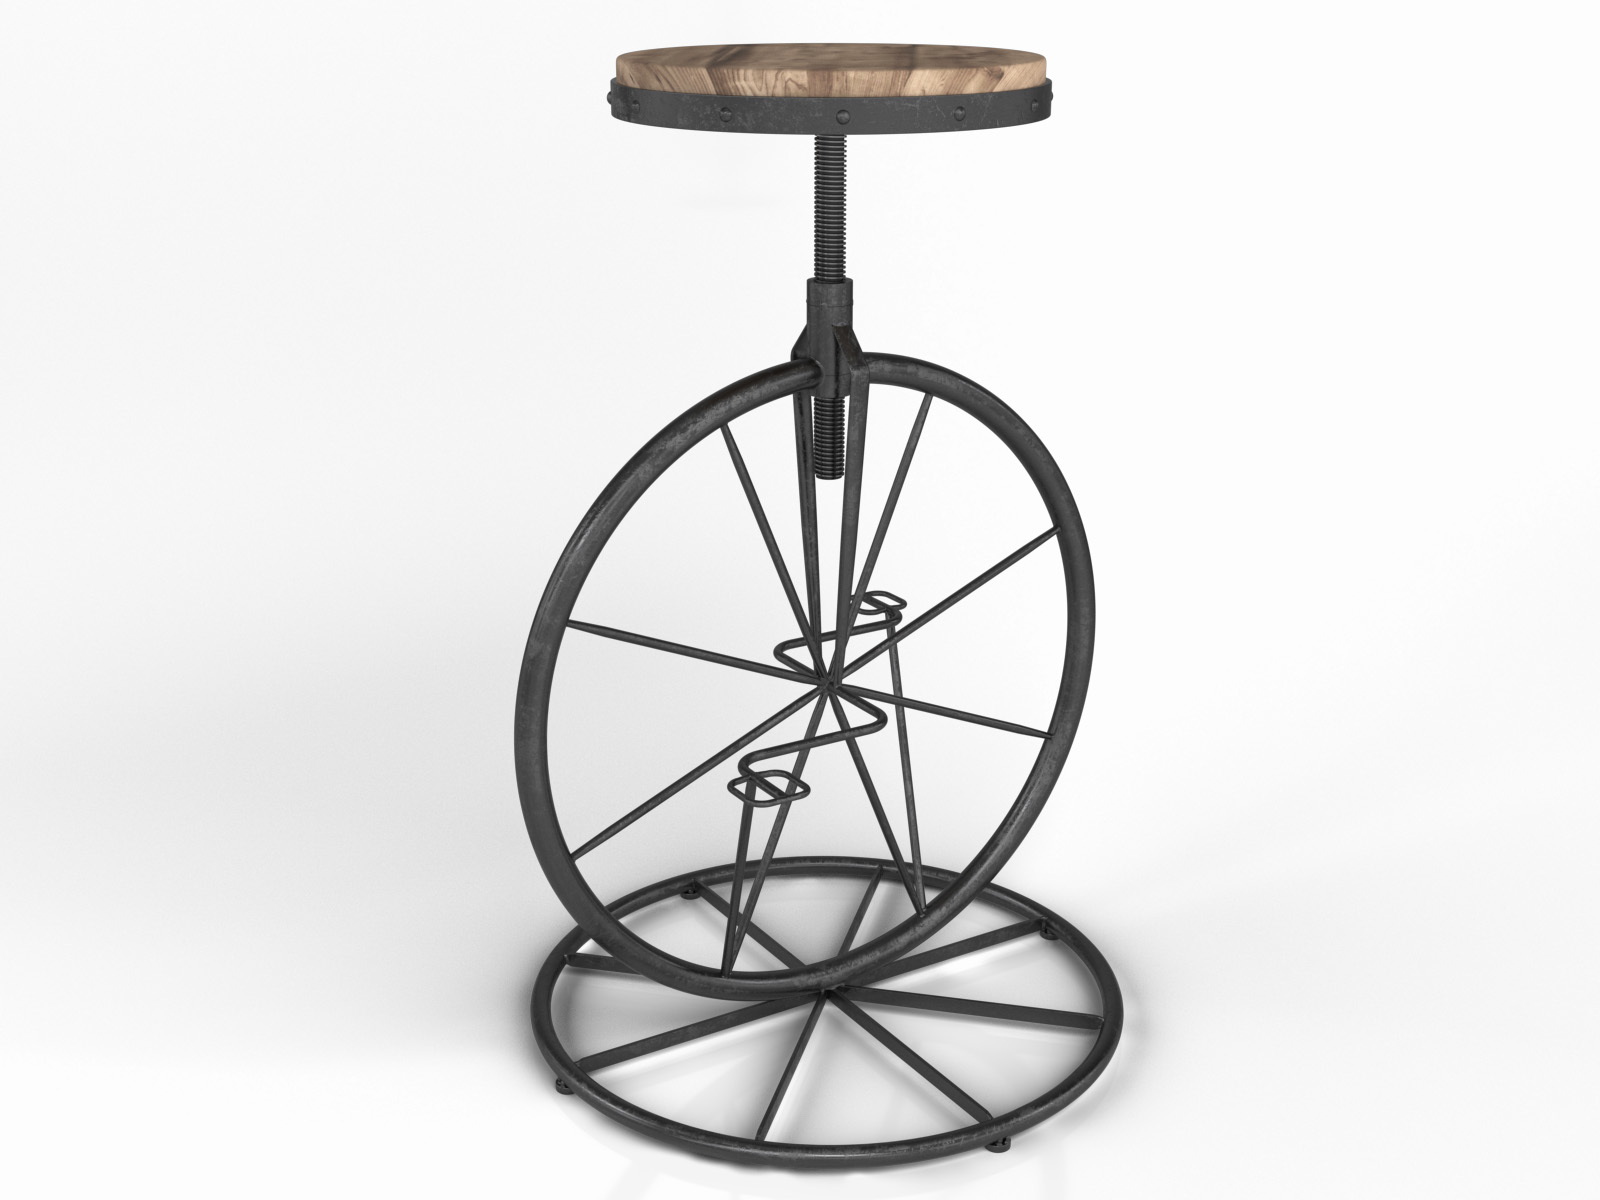 Fantastic Vintage Industrial Charles Bicycle Wheel Barstool With Wooden Seat Iron Pedal Height Adjustable Chair Evergreenethics Interior Chair Design Evergreenethicsorg